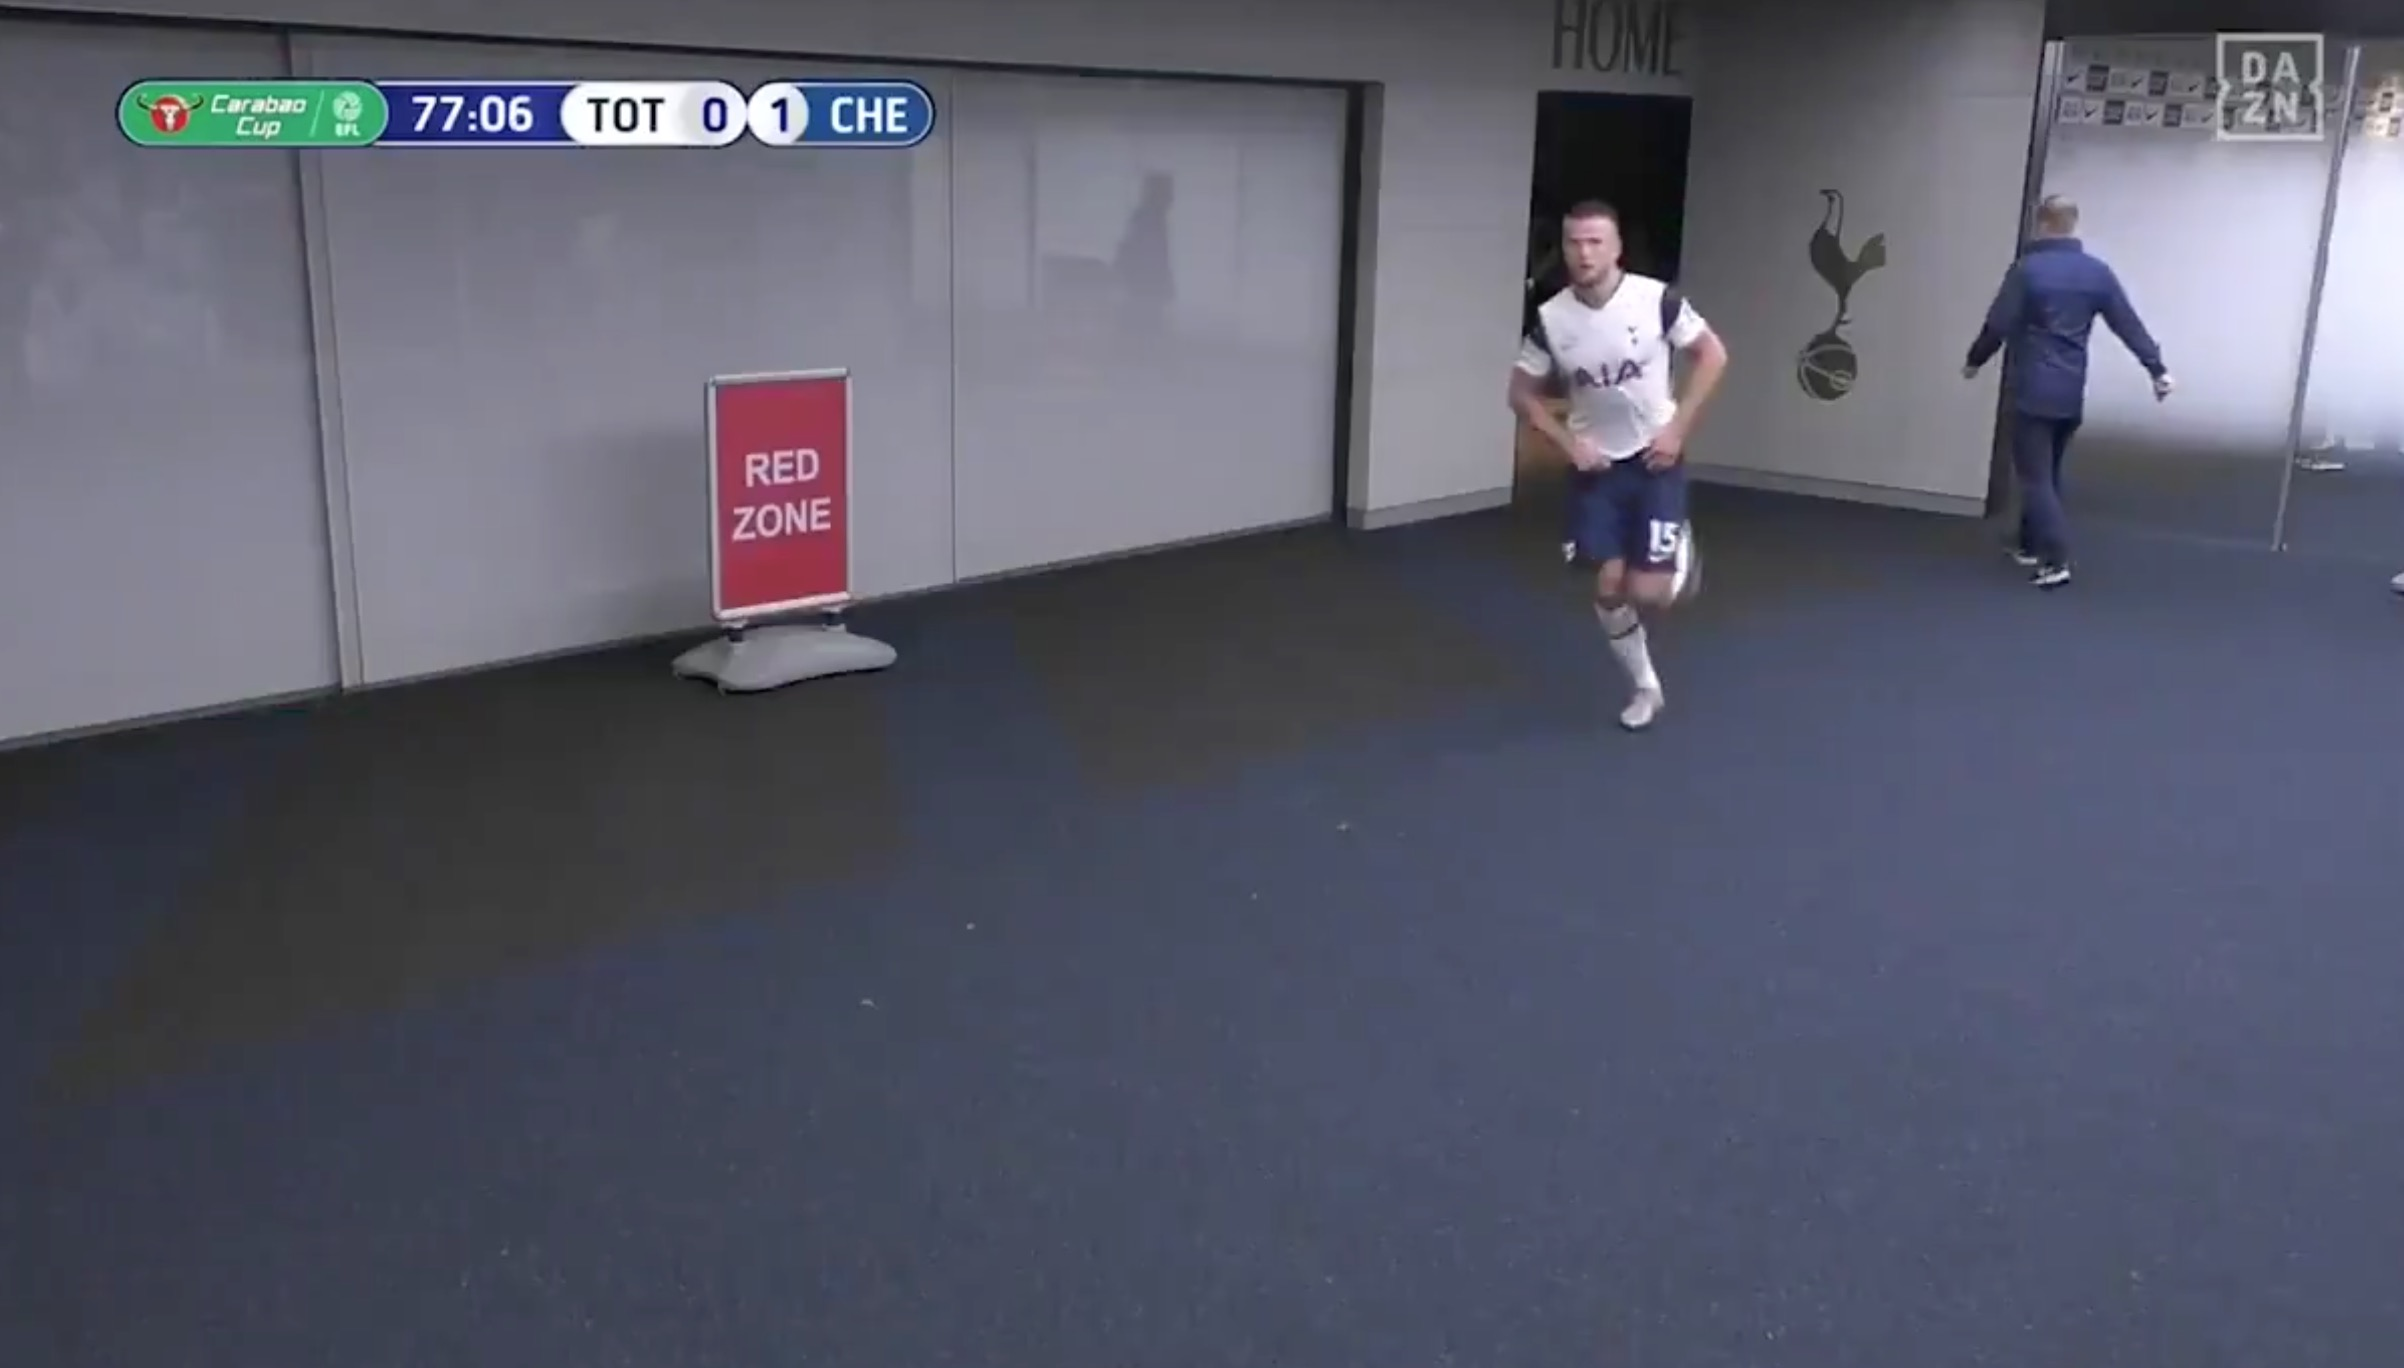 Dier returns after crapping and/or peeing.